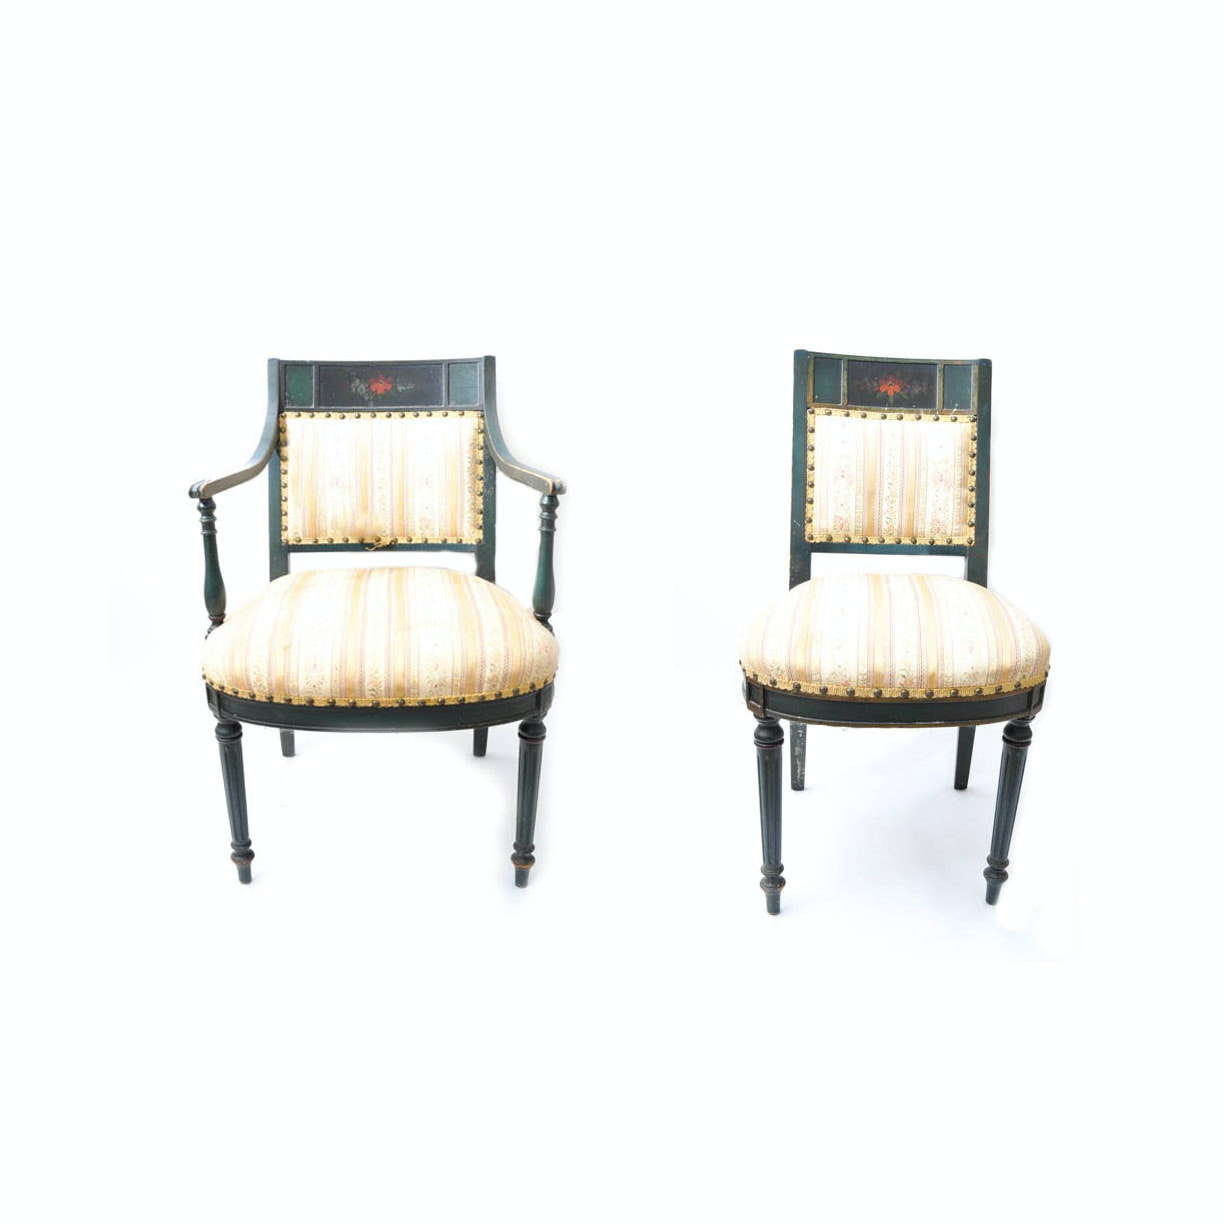 Late 19th to Early 20th Century Louis XVI Style Chairs